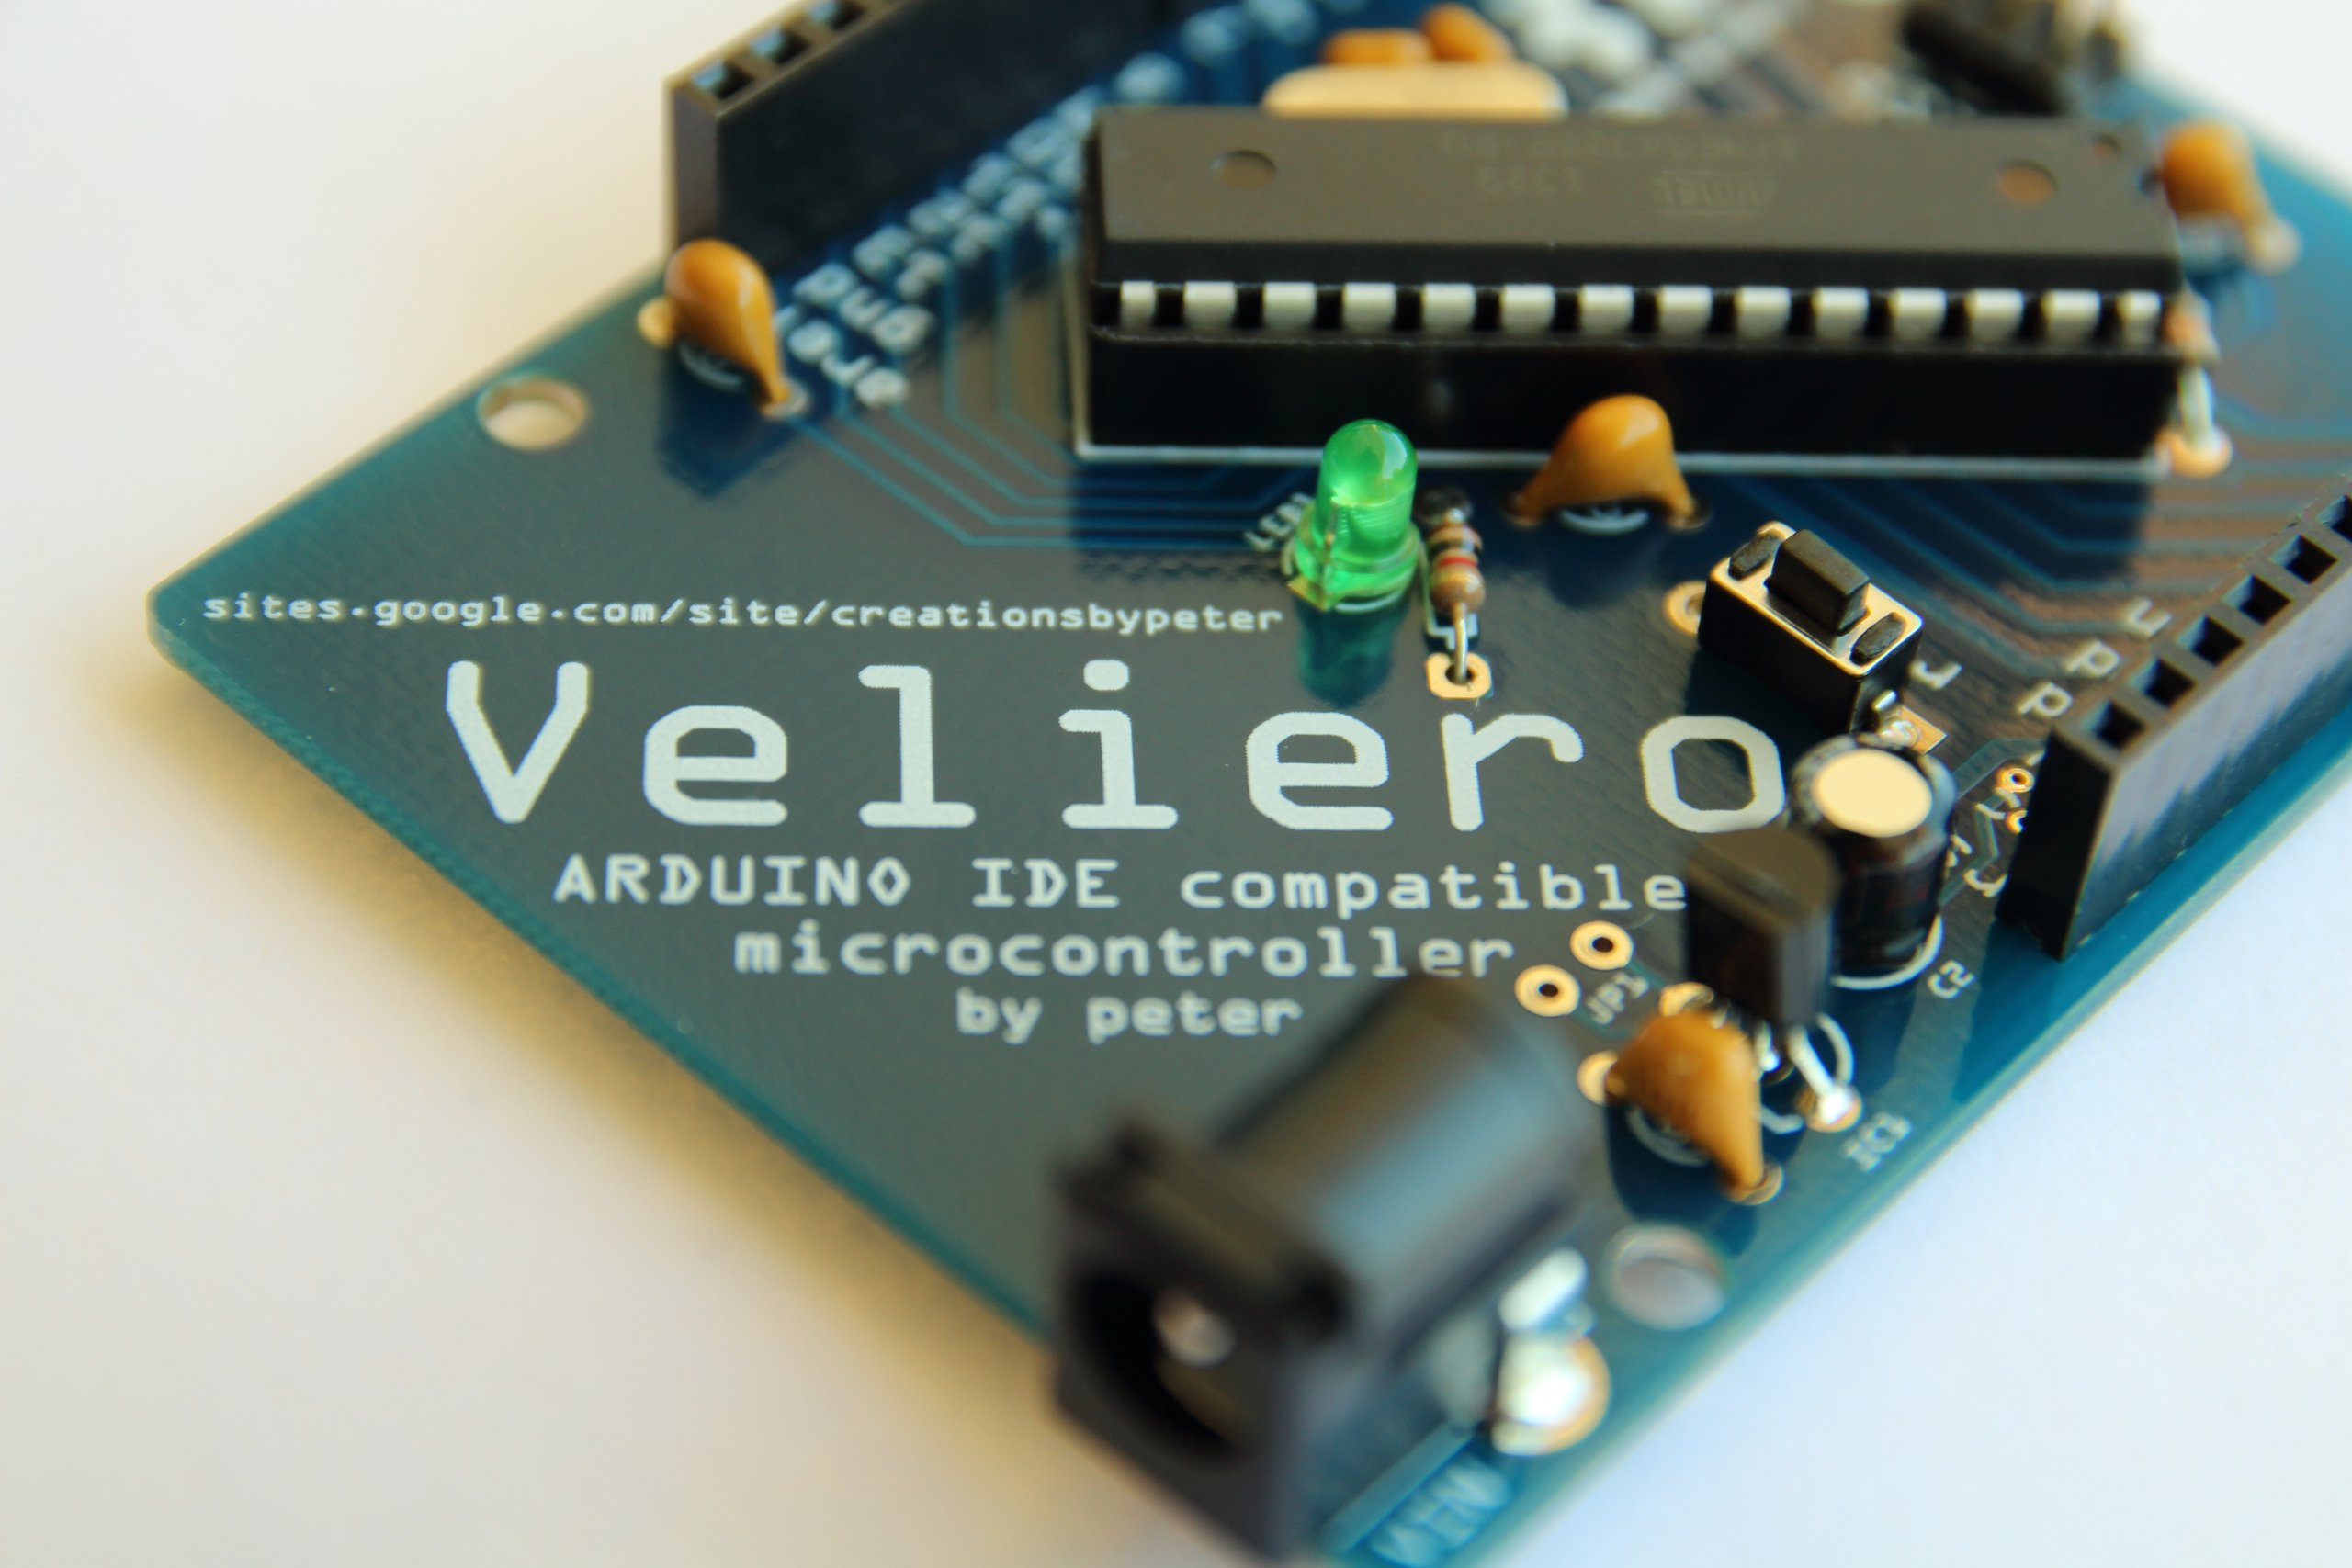 Veliero open arduino compatible microcontroller from